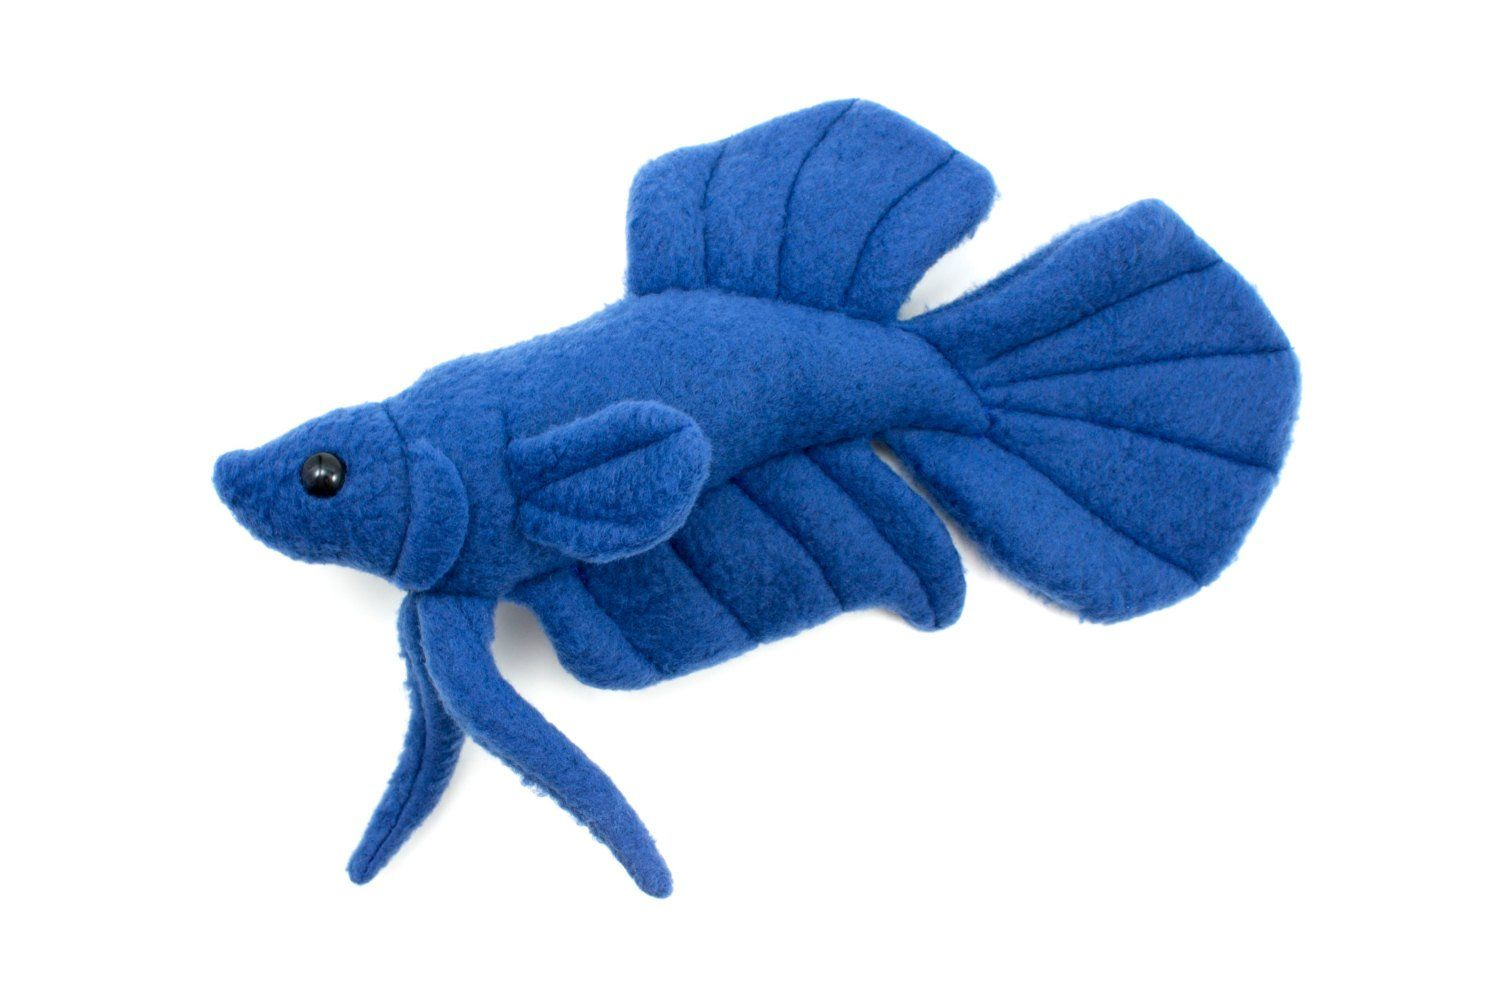 Royal Blue Betta Fish Stuffed Animal Plush Toy Plakat Tail Type